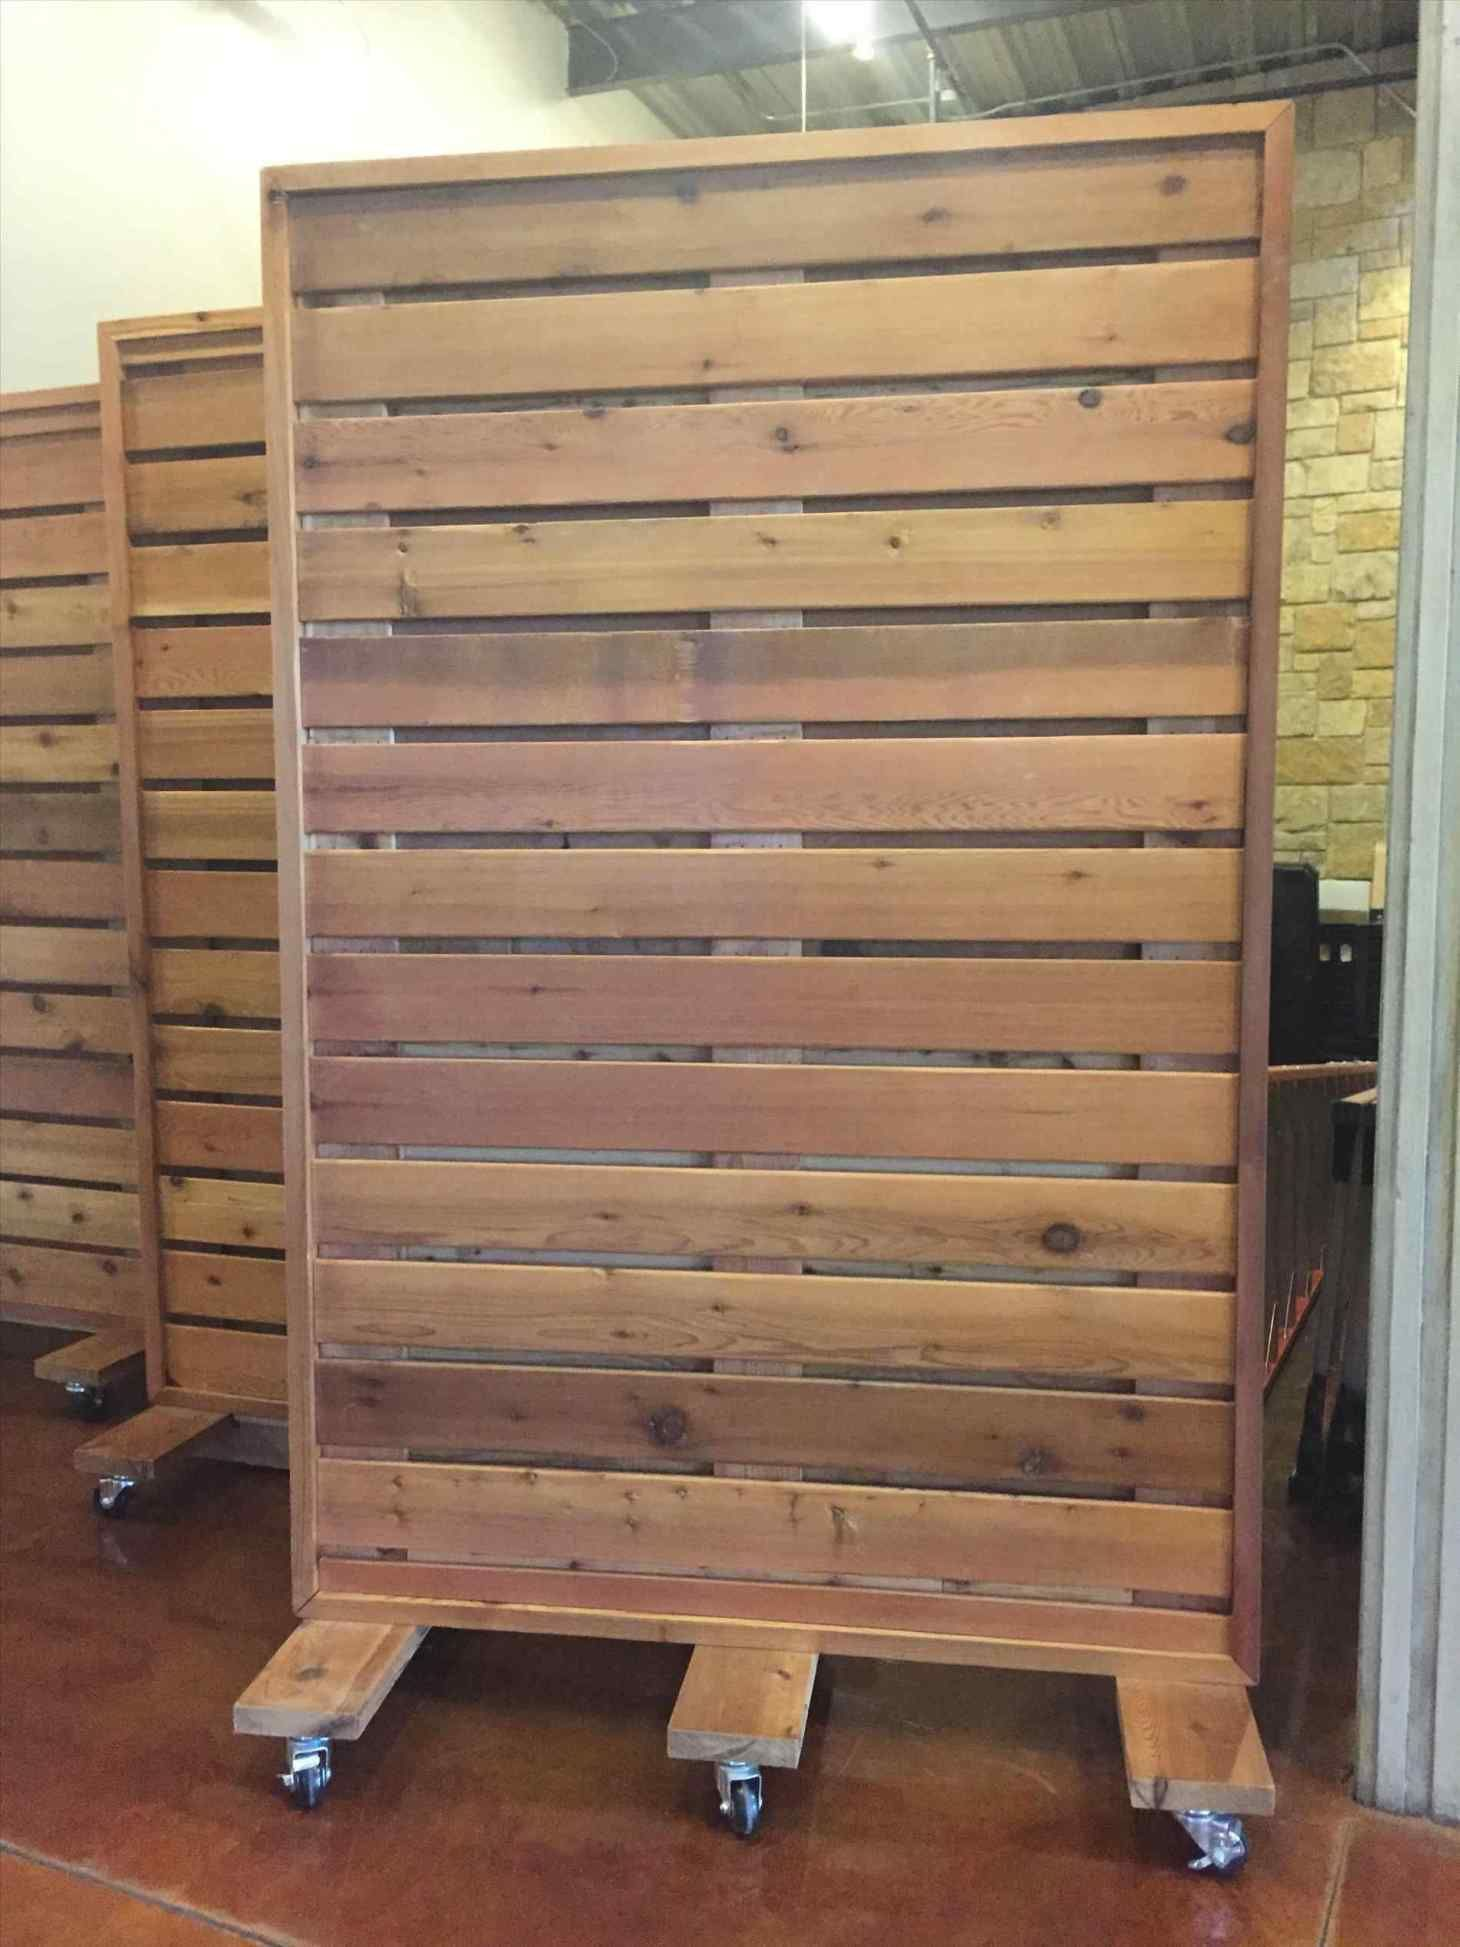 How To Build A Freestanding Wall On Wheels Design Partition Wall